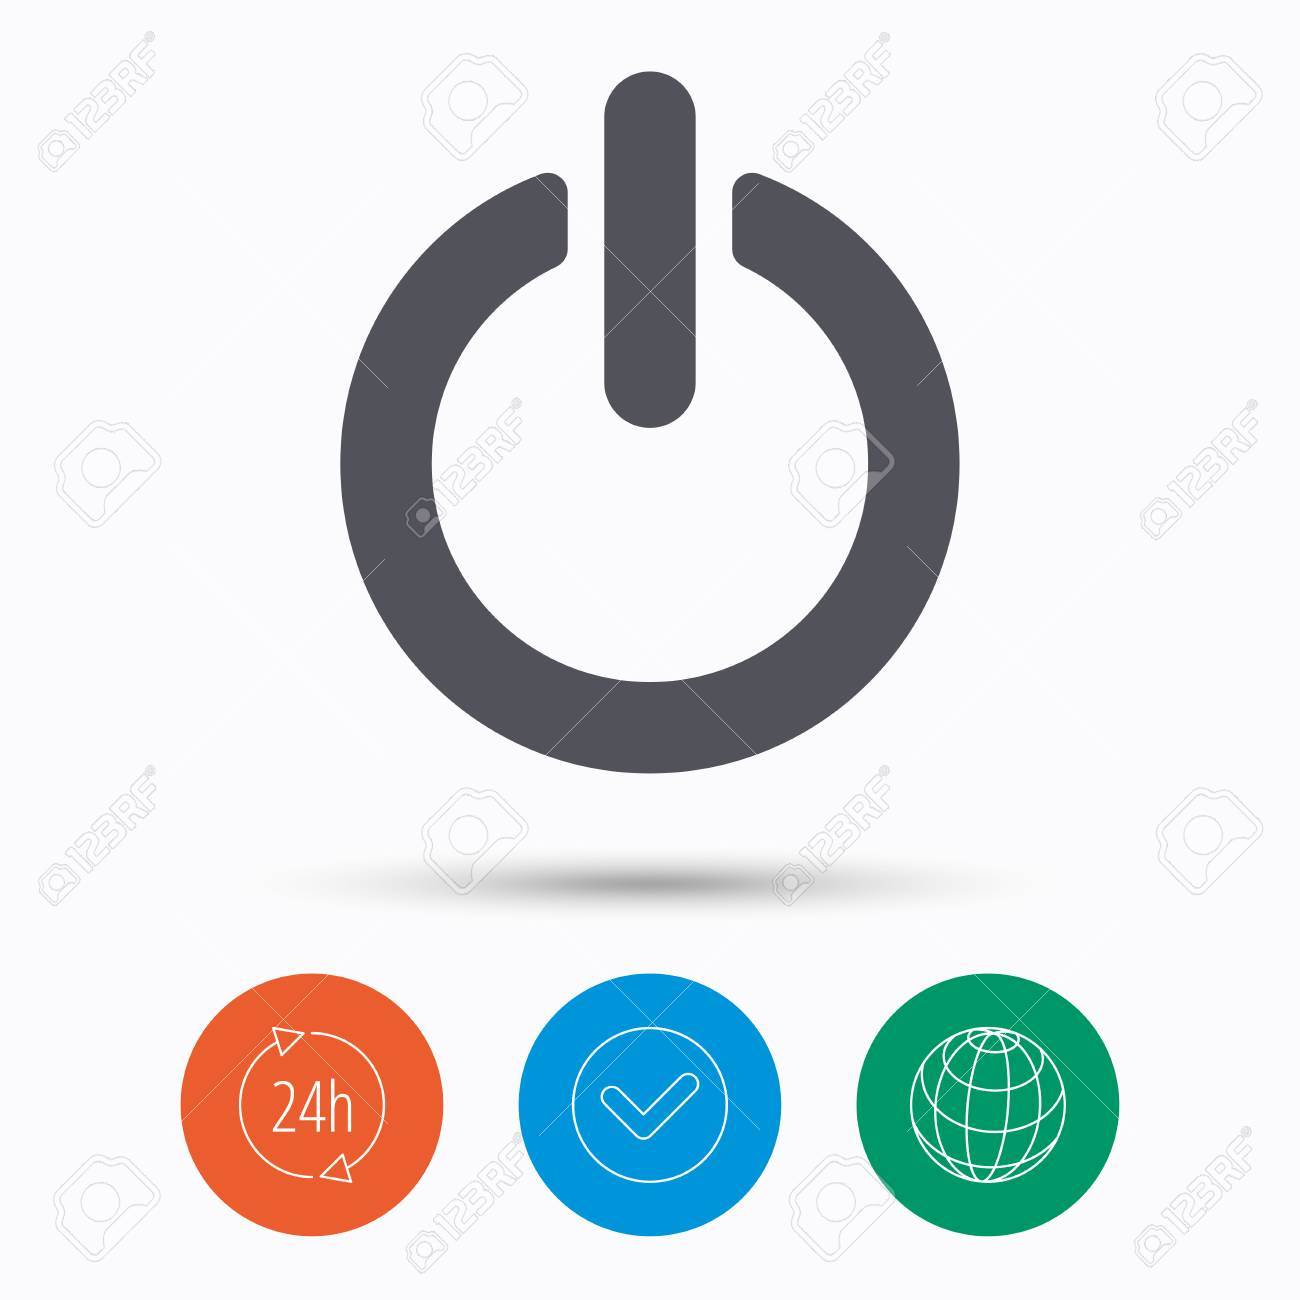 24 Internet On Off Power Icon Energy Switch Symbol Check Tick 24 Hours Service And Internet Globe Linear Icons On White Background Vector